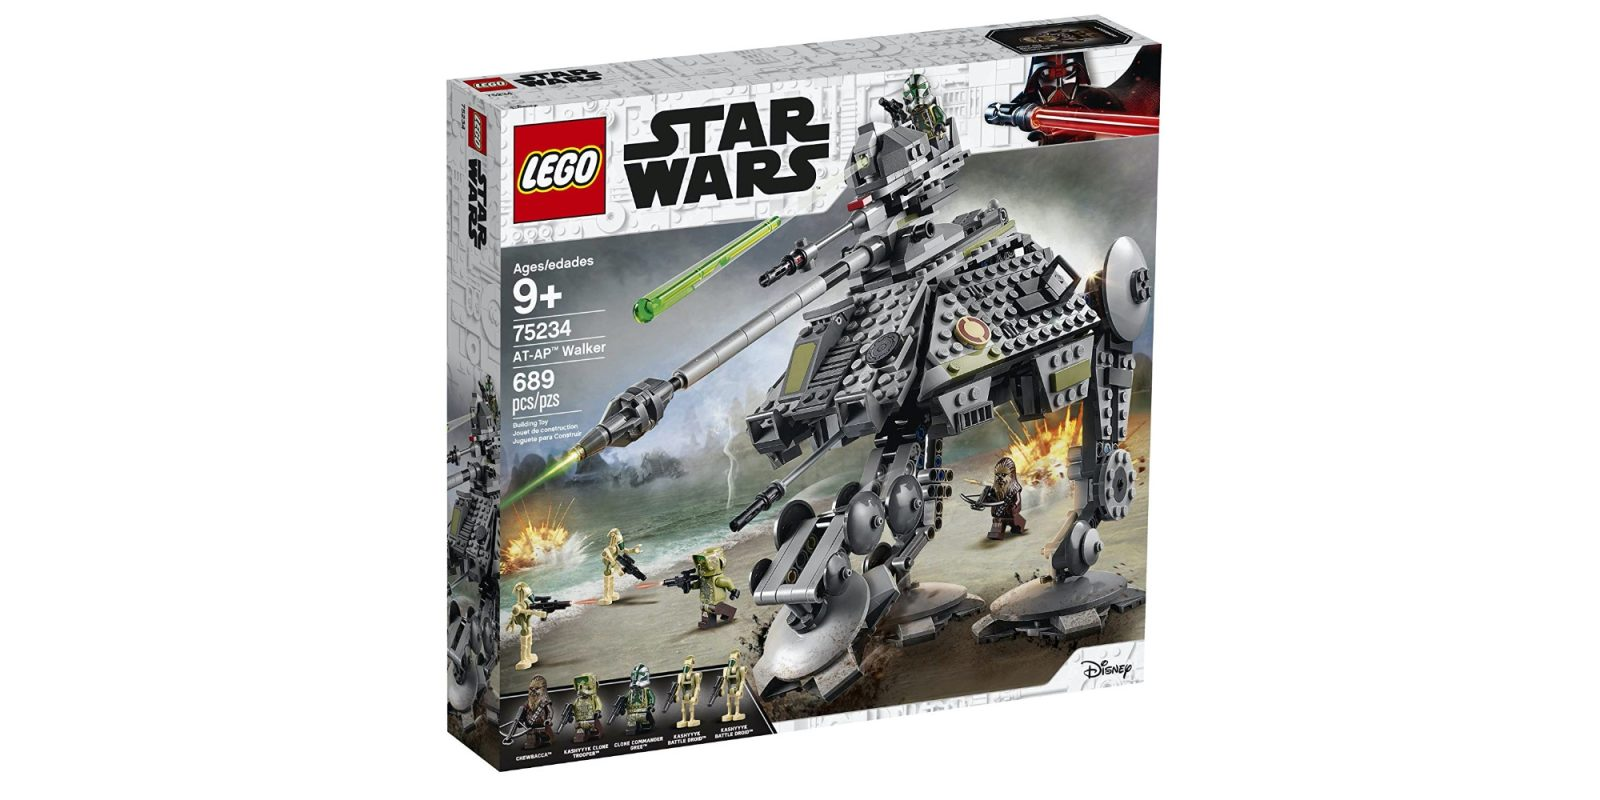 Assemble LEGO's Star Wars AT-AP Walker for $49 (Reg. $60), more kits from $11